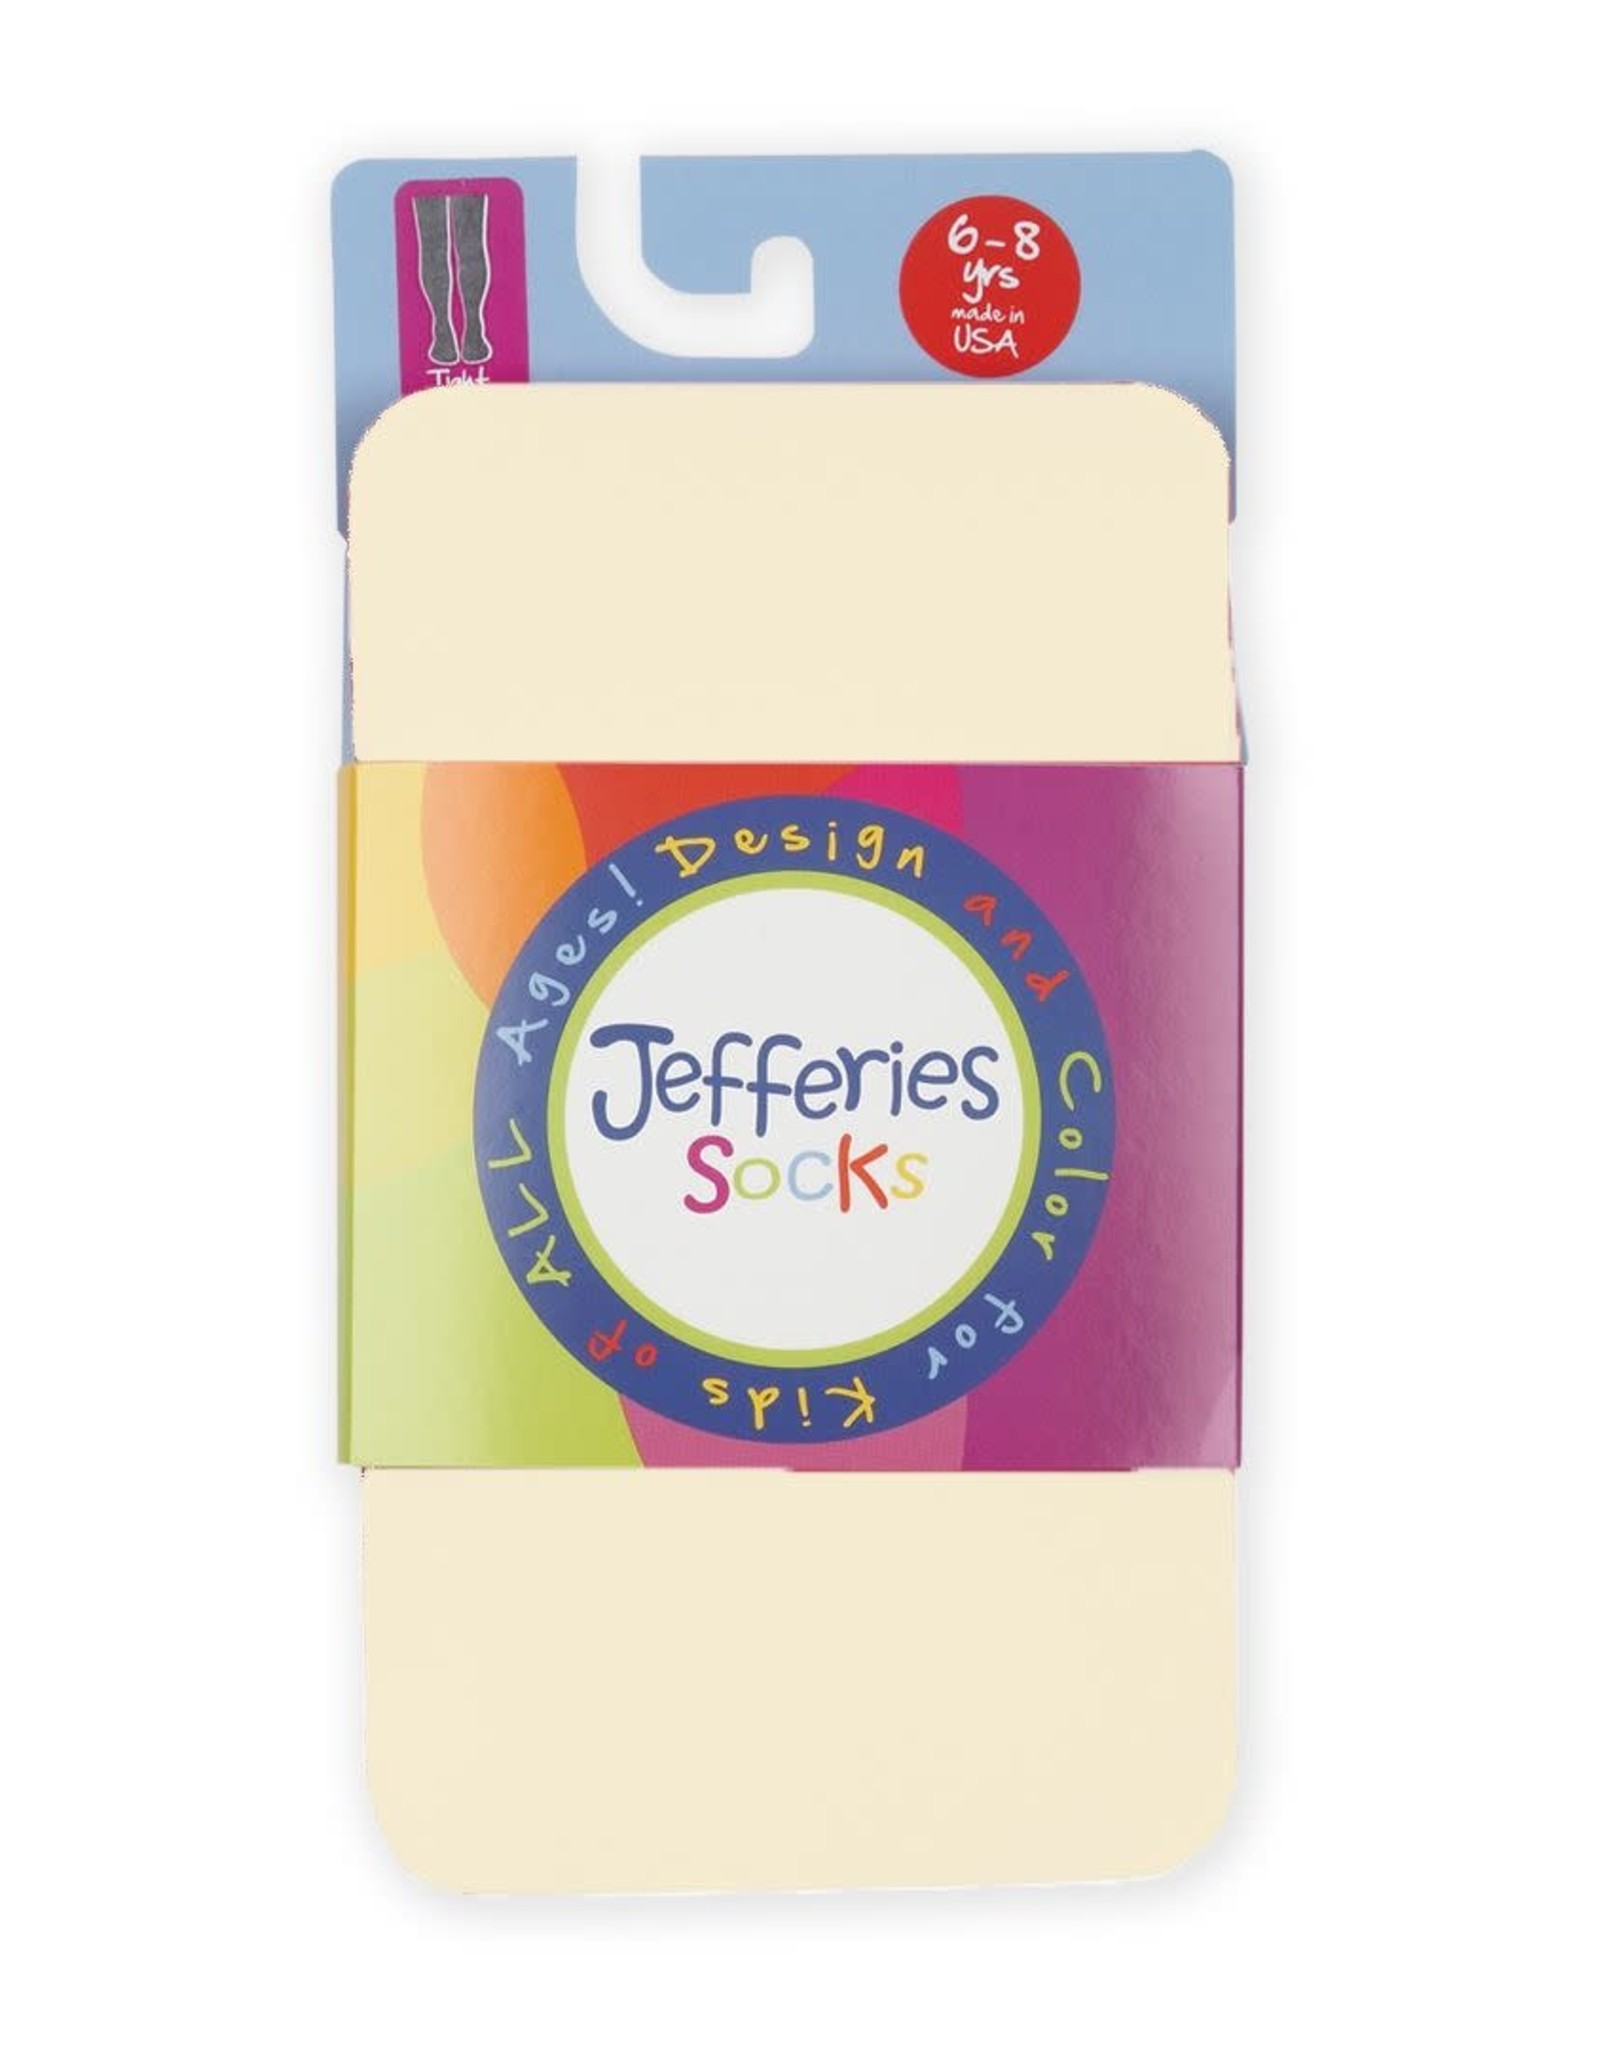 Jefferies Socks Smooth Microfiber Tights in Ivory